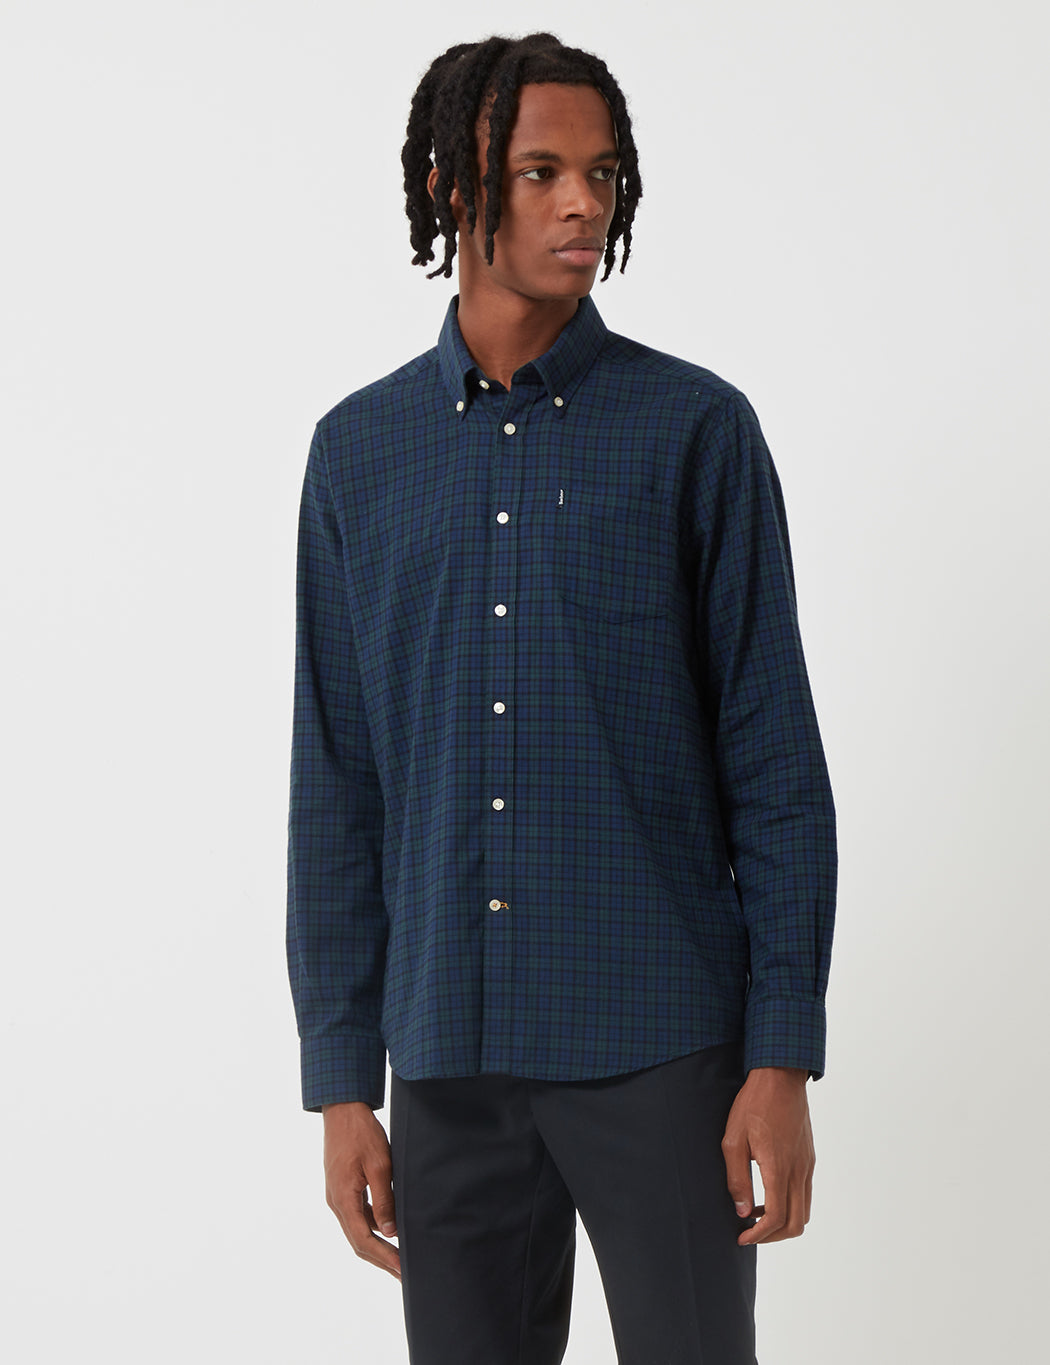 Barbour Stapleton Dalton Check Shirt - Navy Blue